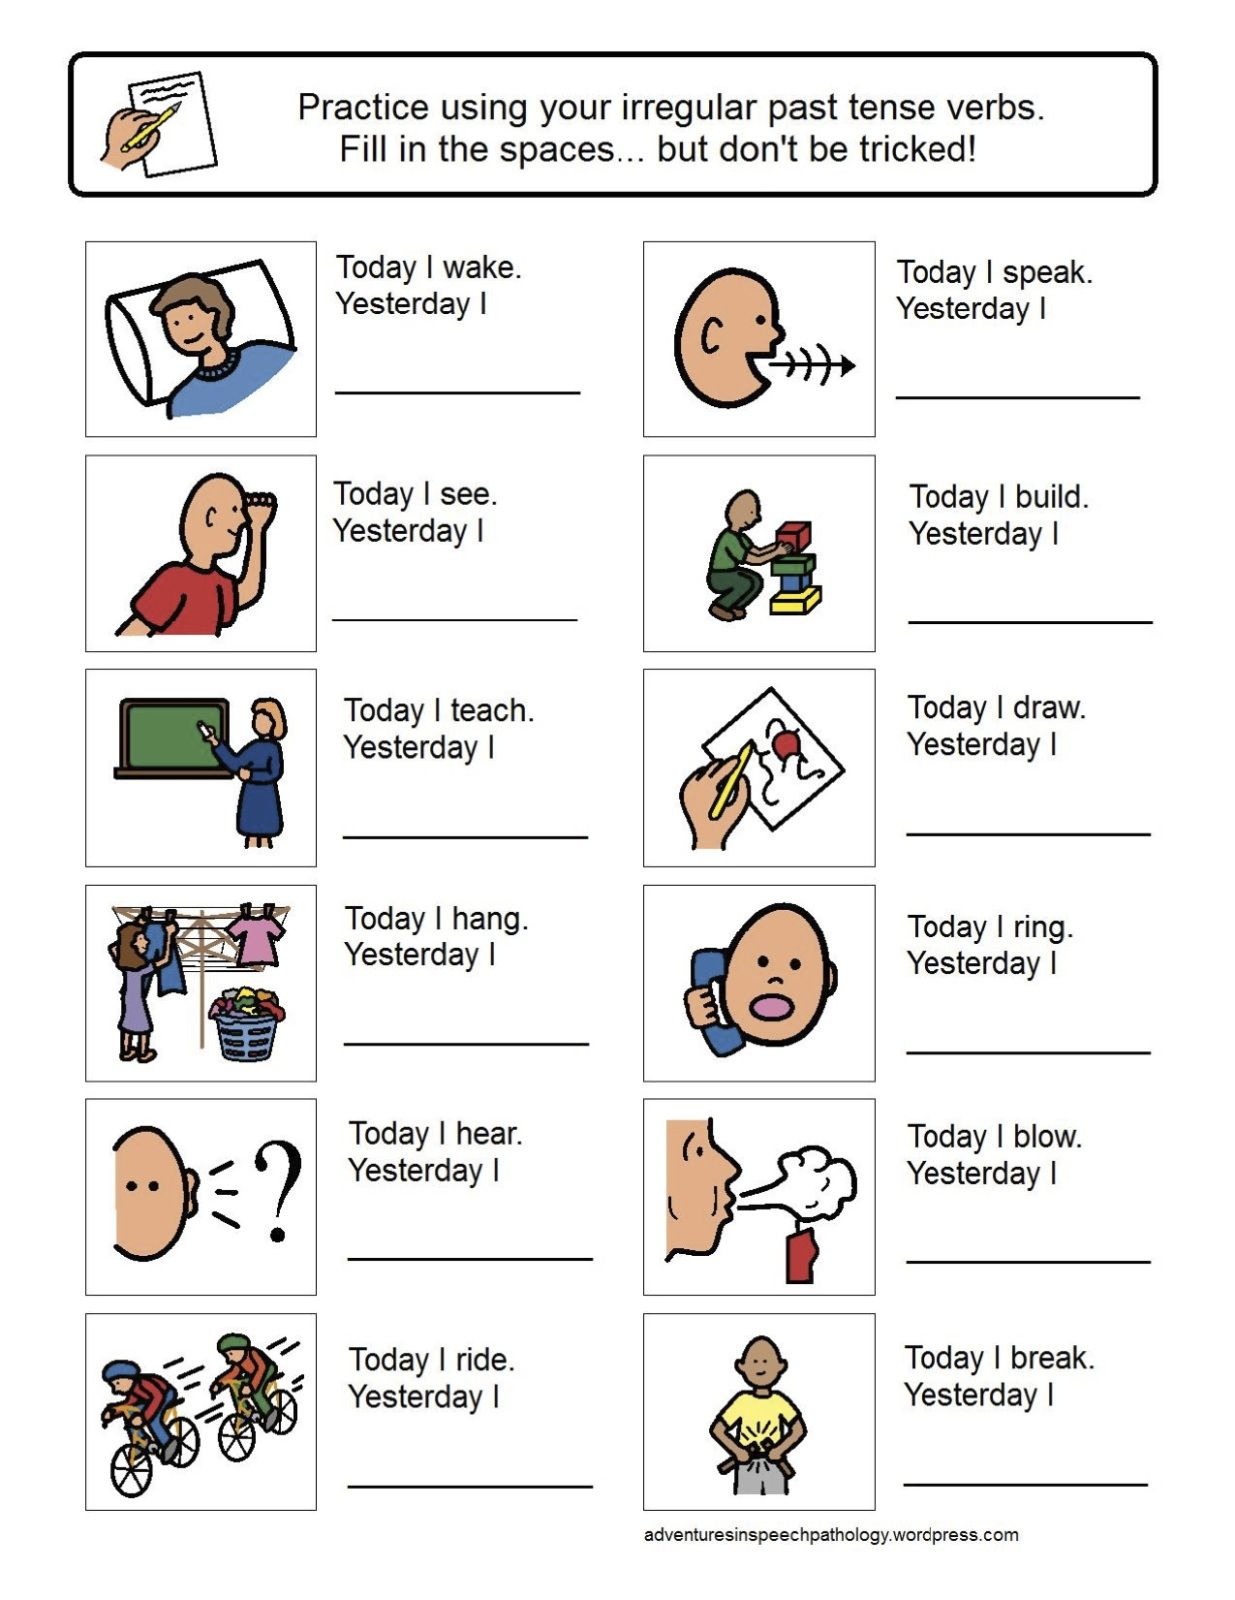 Irregular Past Tense Verb Worksheets As A Class Writing Warm Up